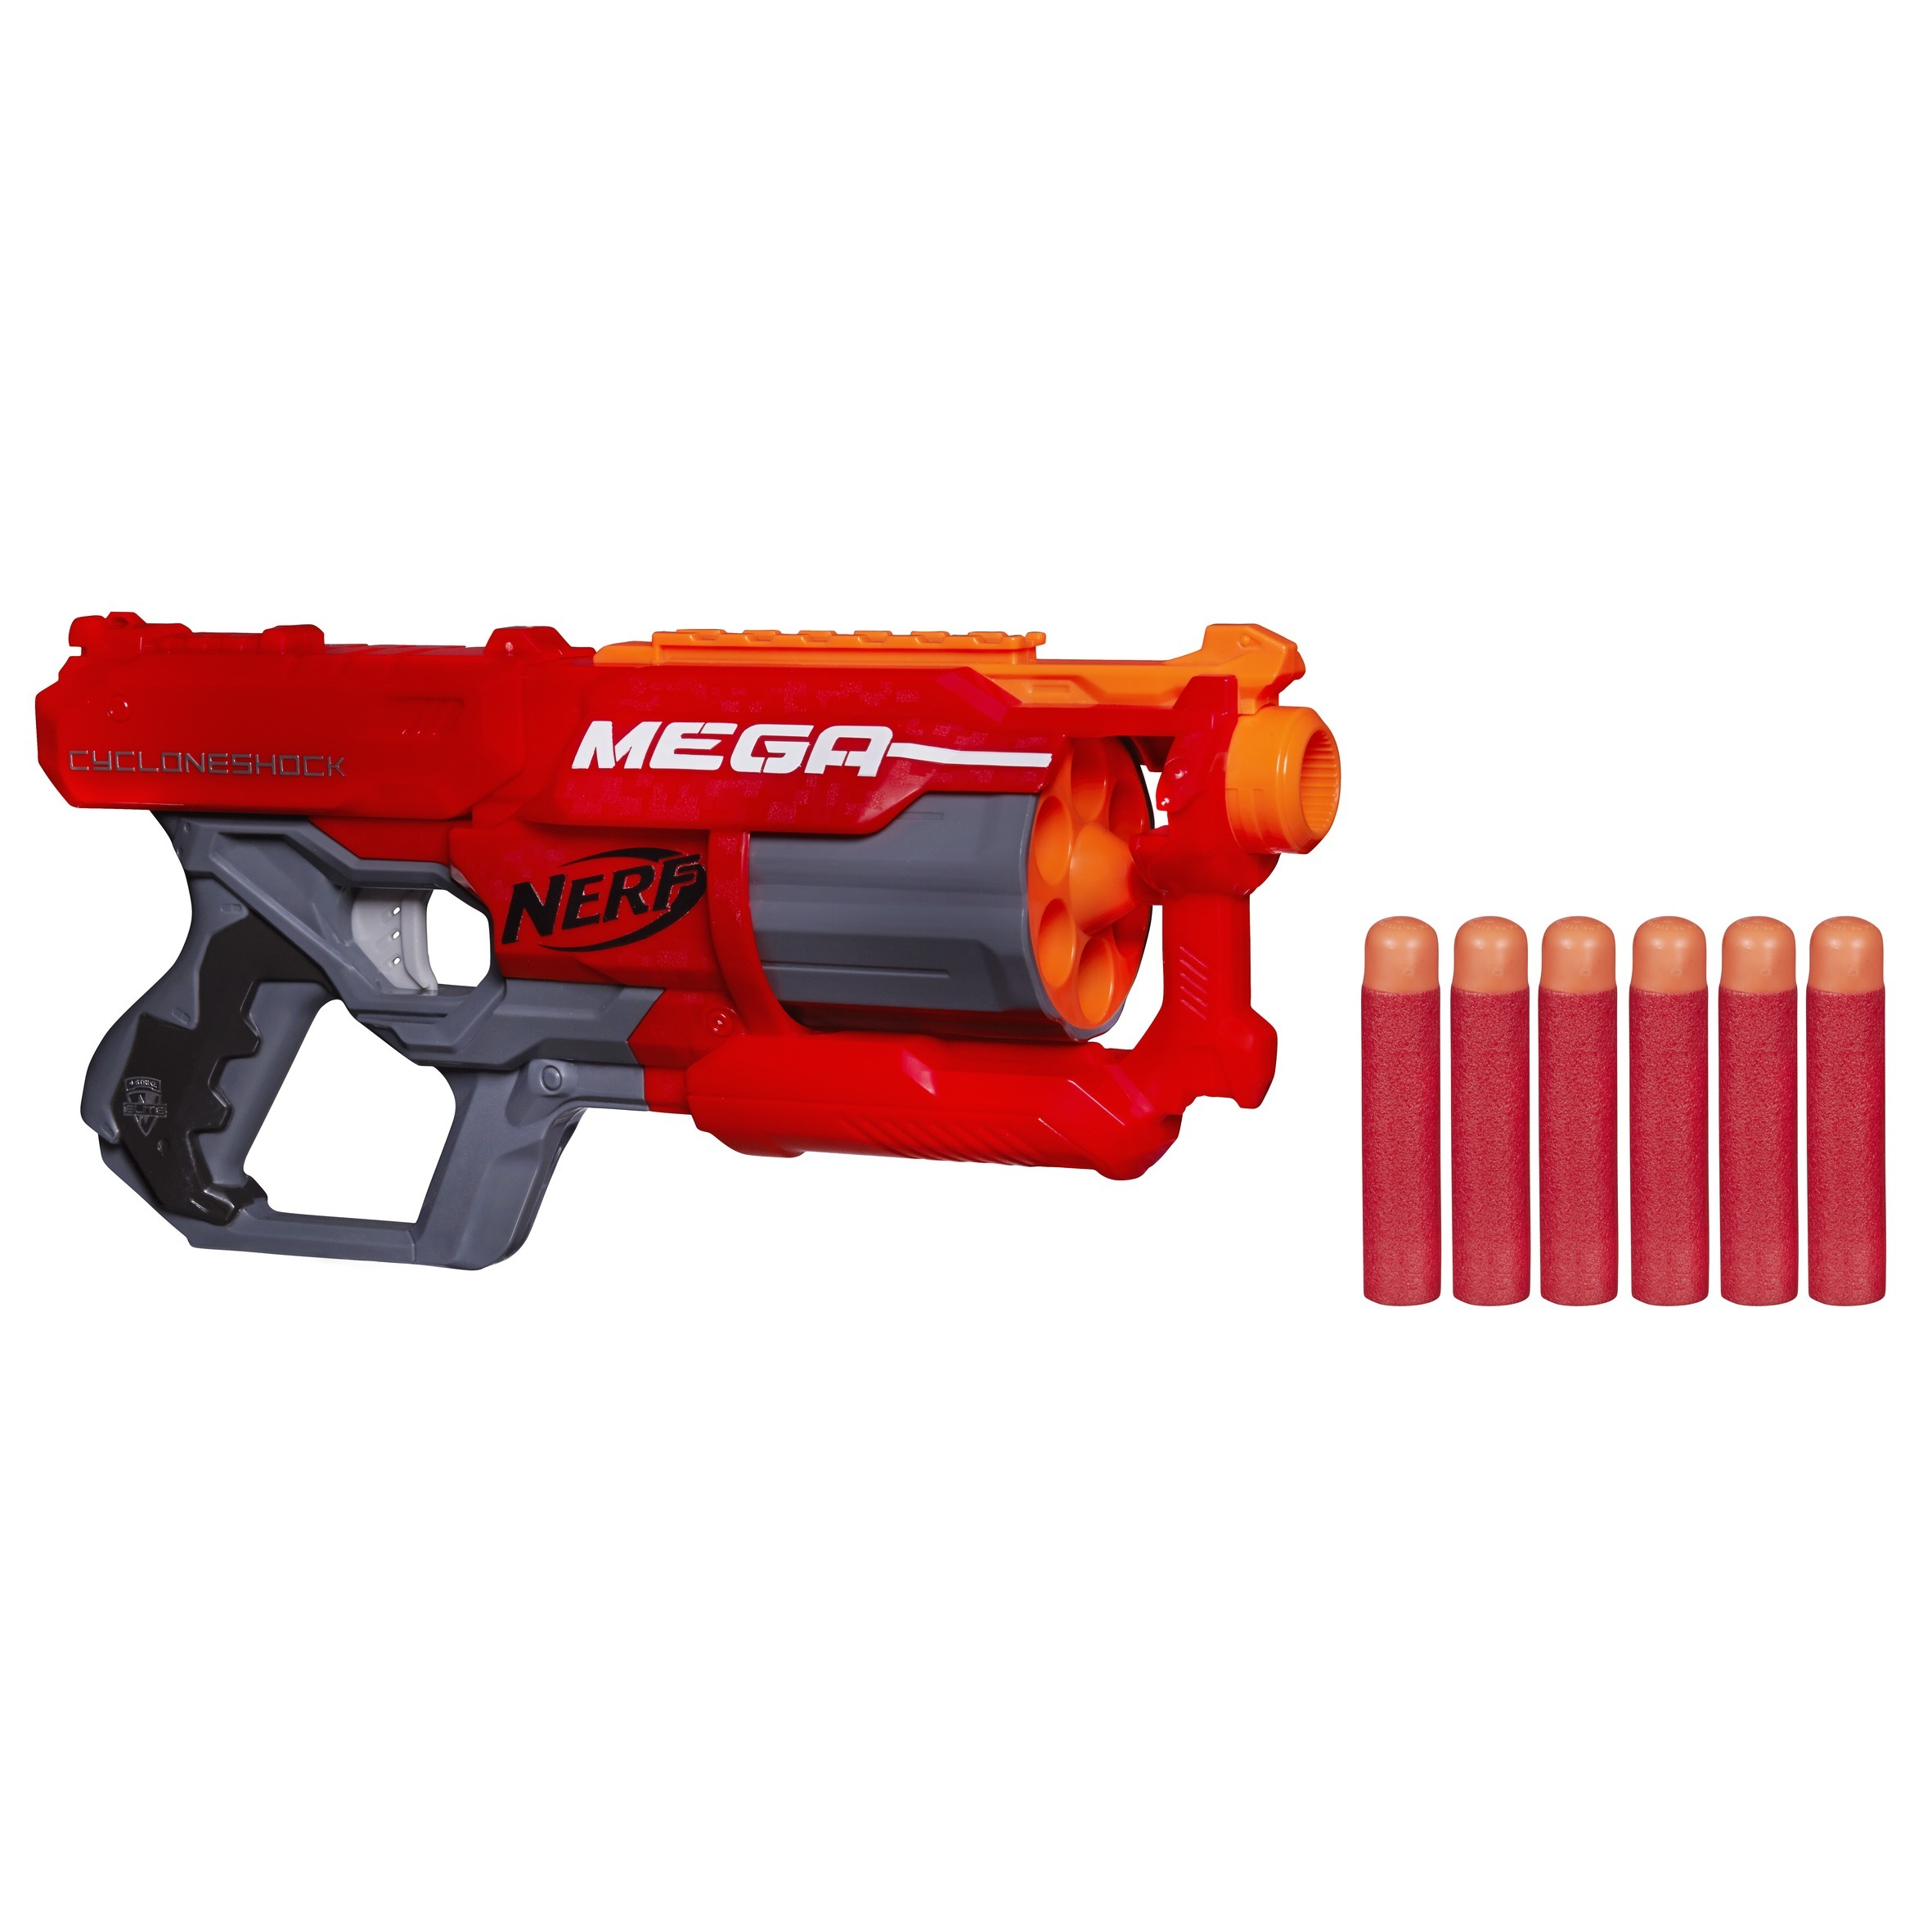 nerf pistolet elite m ga cyclone a9353eu40 pas cher achat vente jeux d 39 adresse. Black Bedroom Furniture Sets. Home Design Ideas